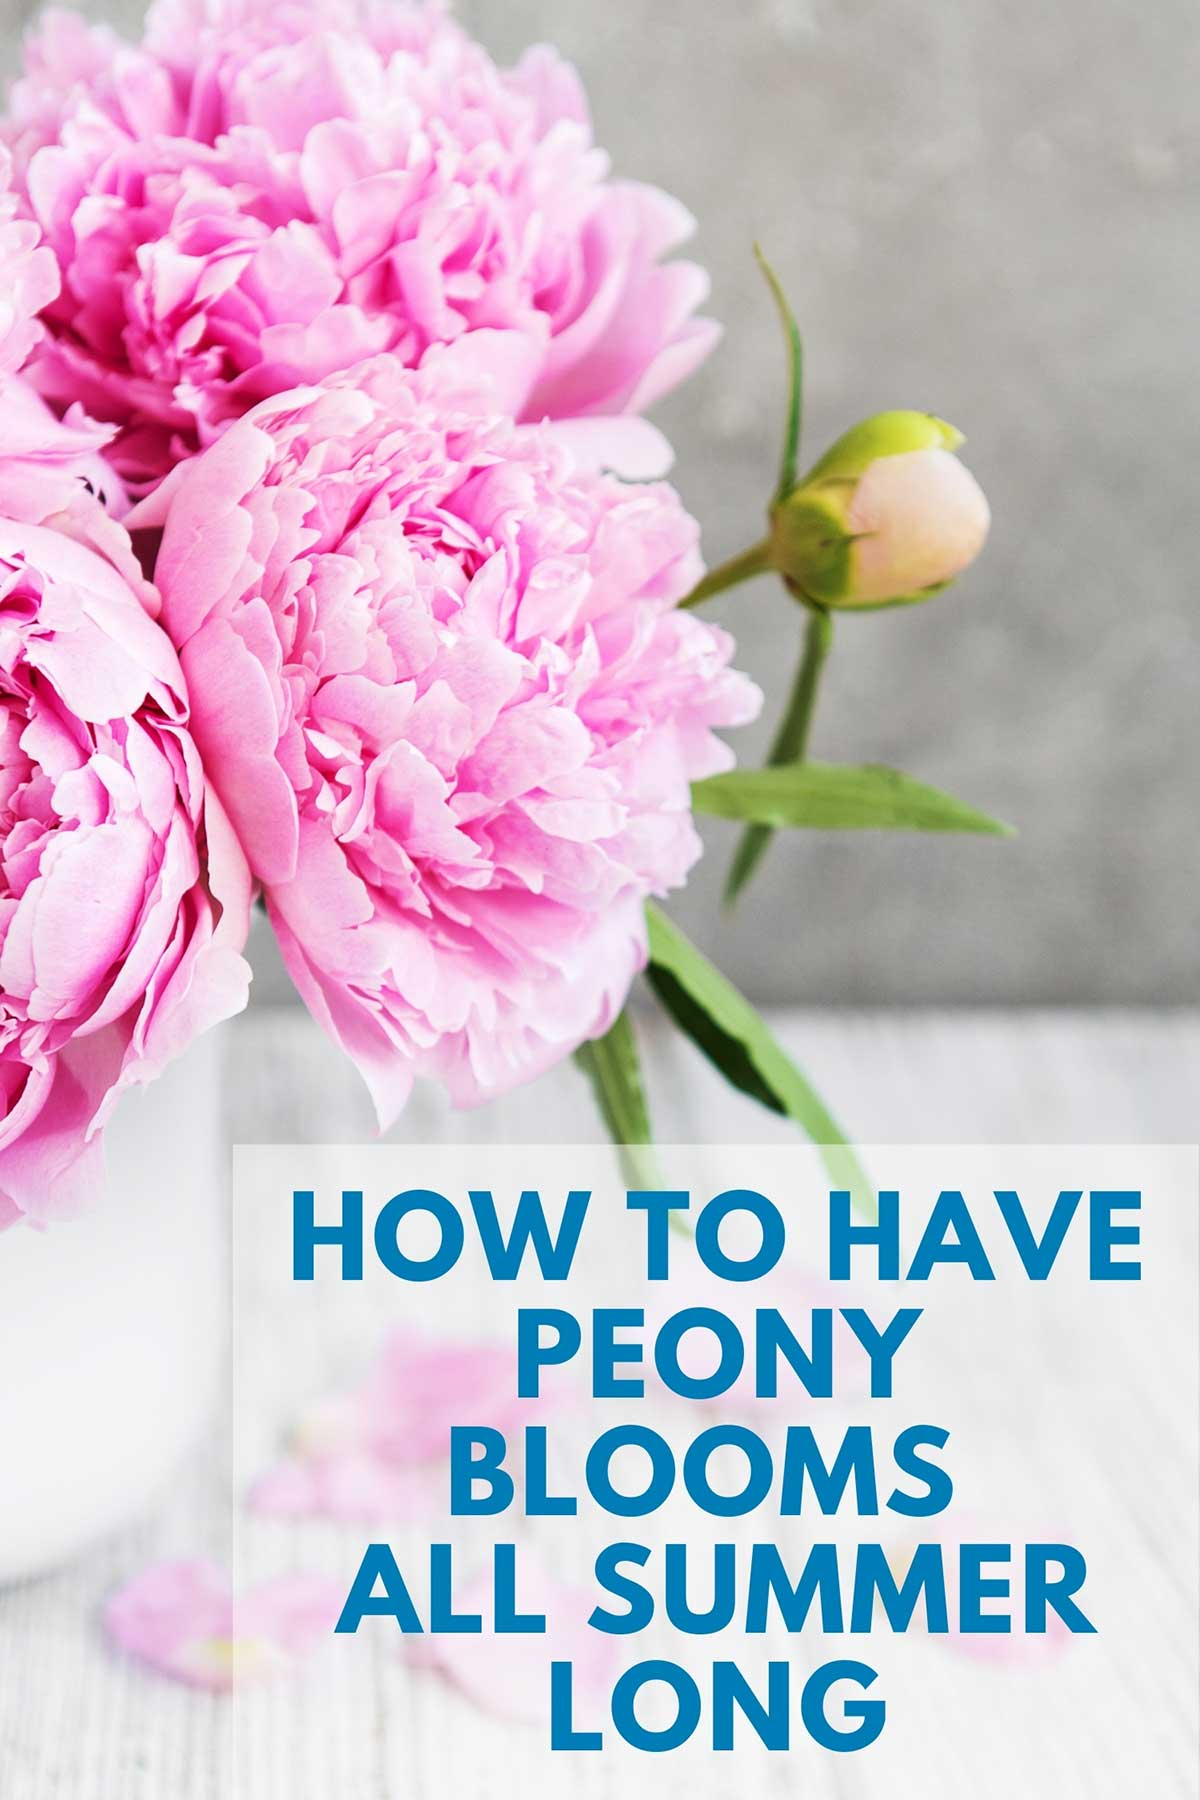 Pink peonies in a vase with a white background.